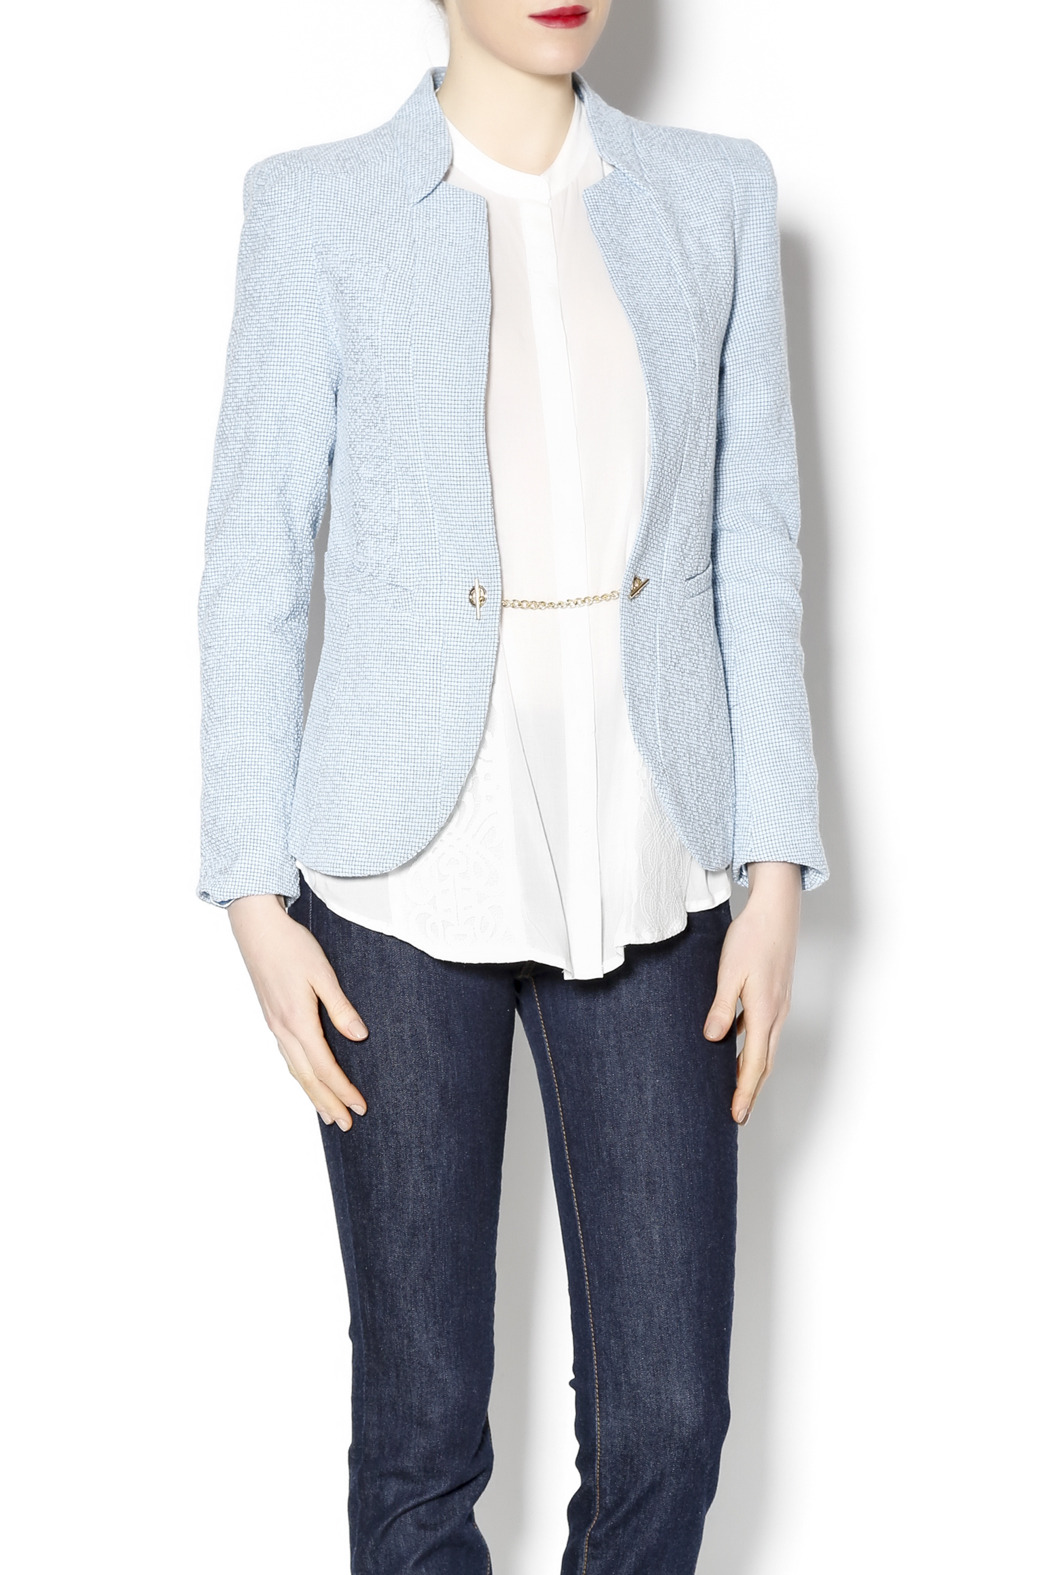 Lucy & Co. Powder Blue Blazer - Front Cropped Image